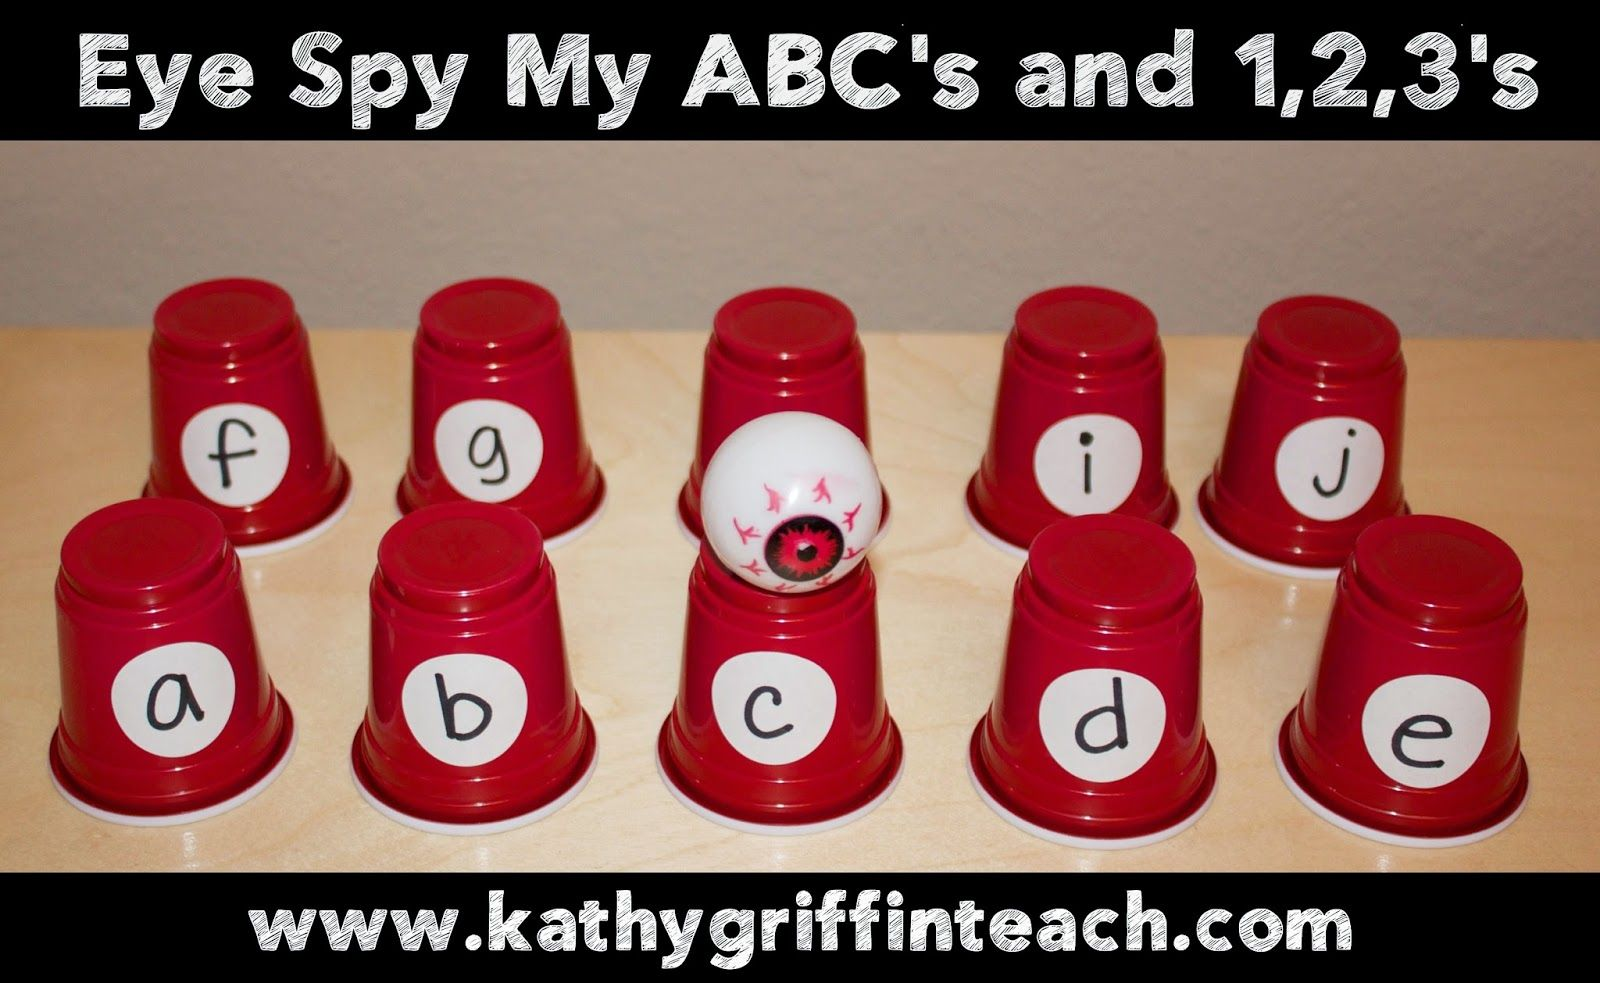 Fun Eye Spy Game For Learning The Letters Of The Alphabet